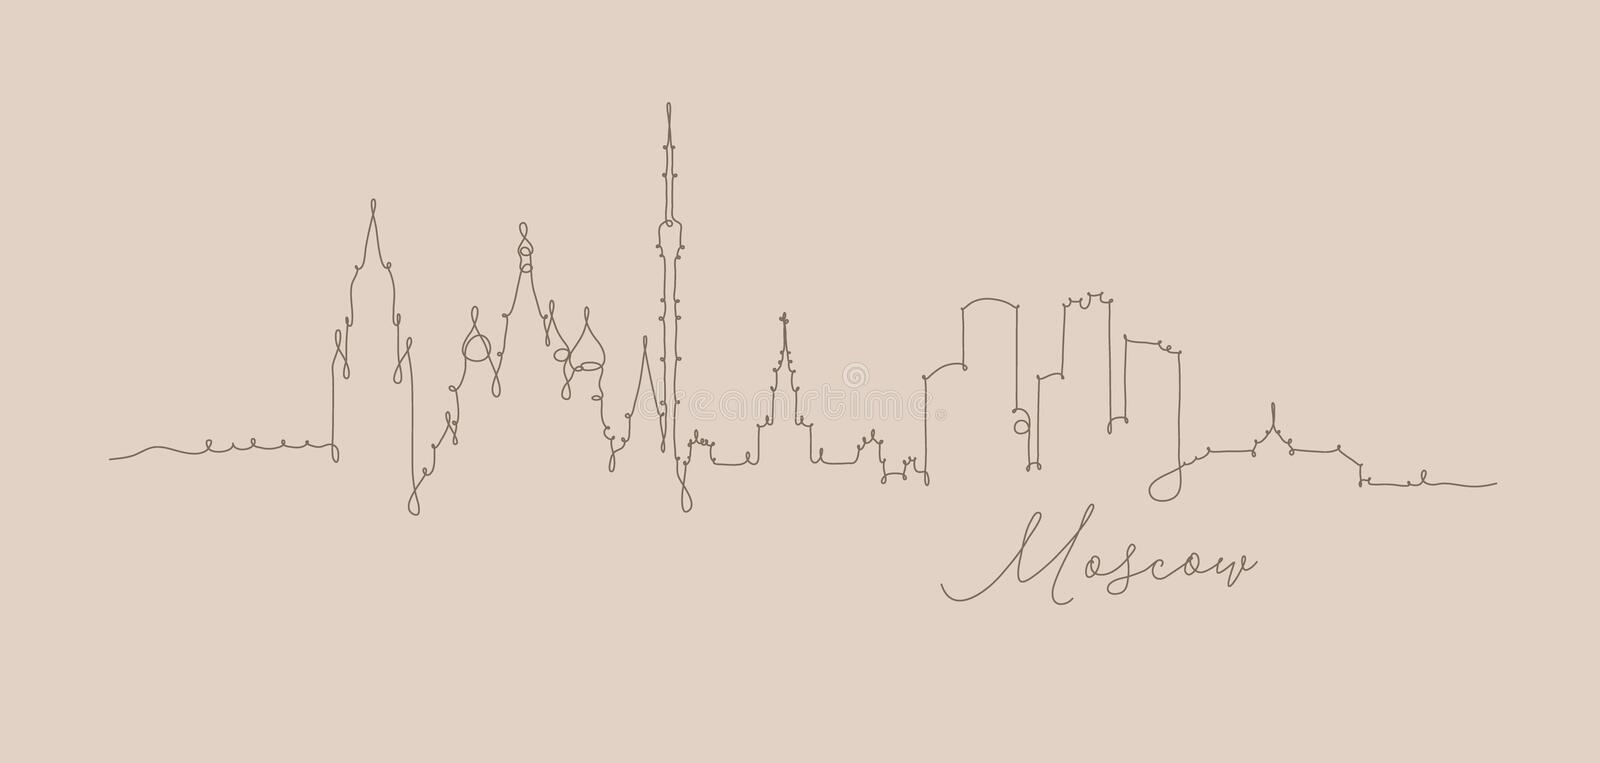 Pen line silhouette moscow beige. City silhouette moscow in pen line style drawing with brown lines on beige background vector illustration